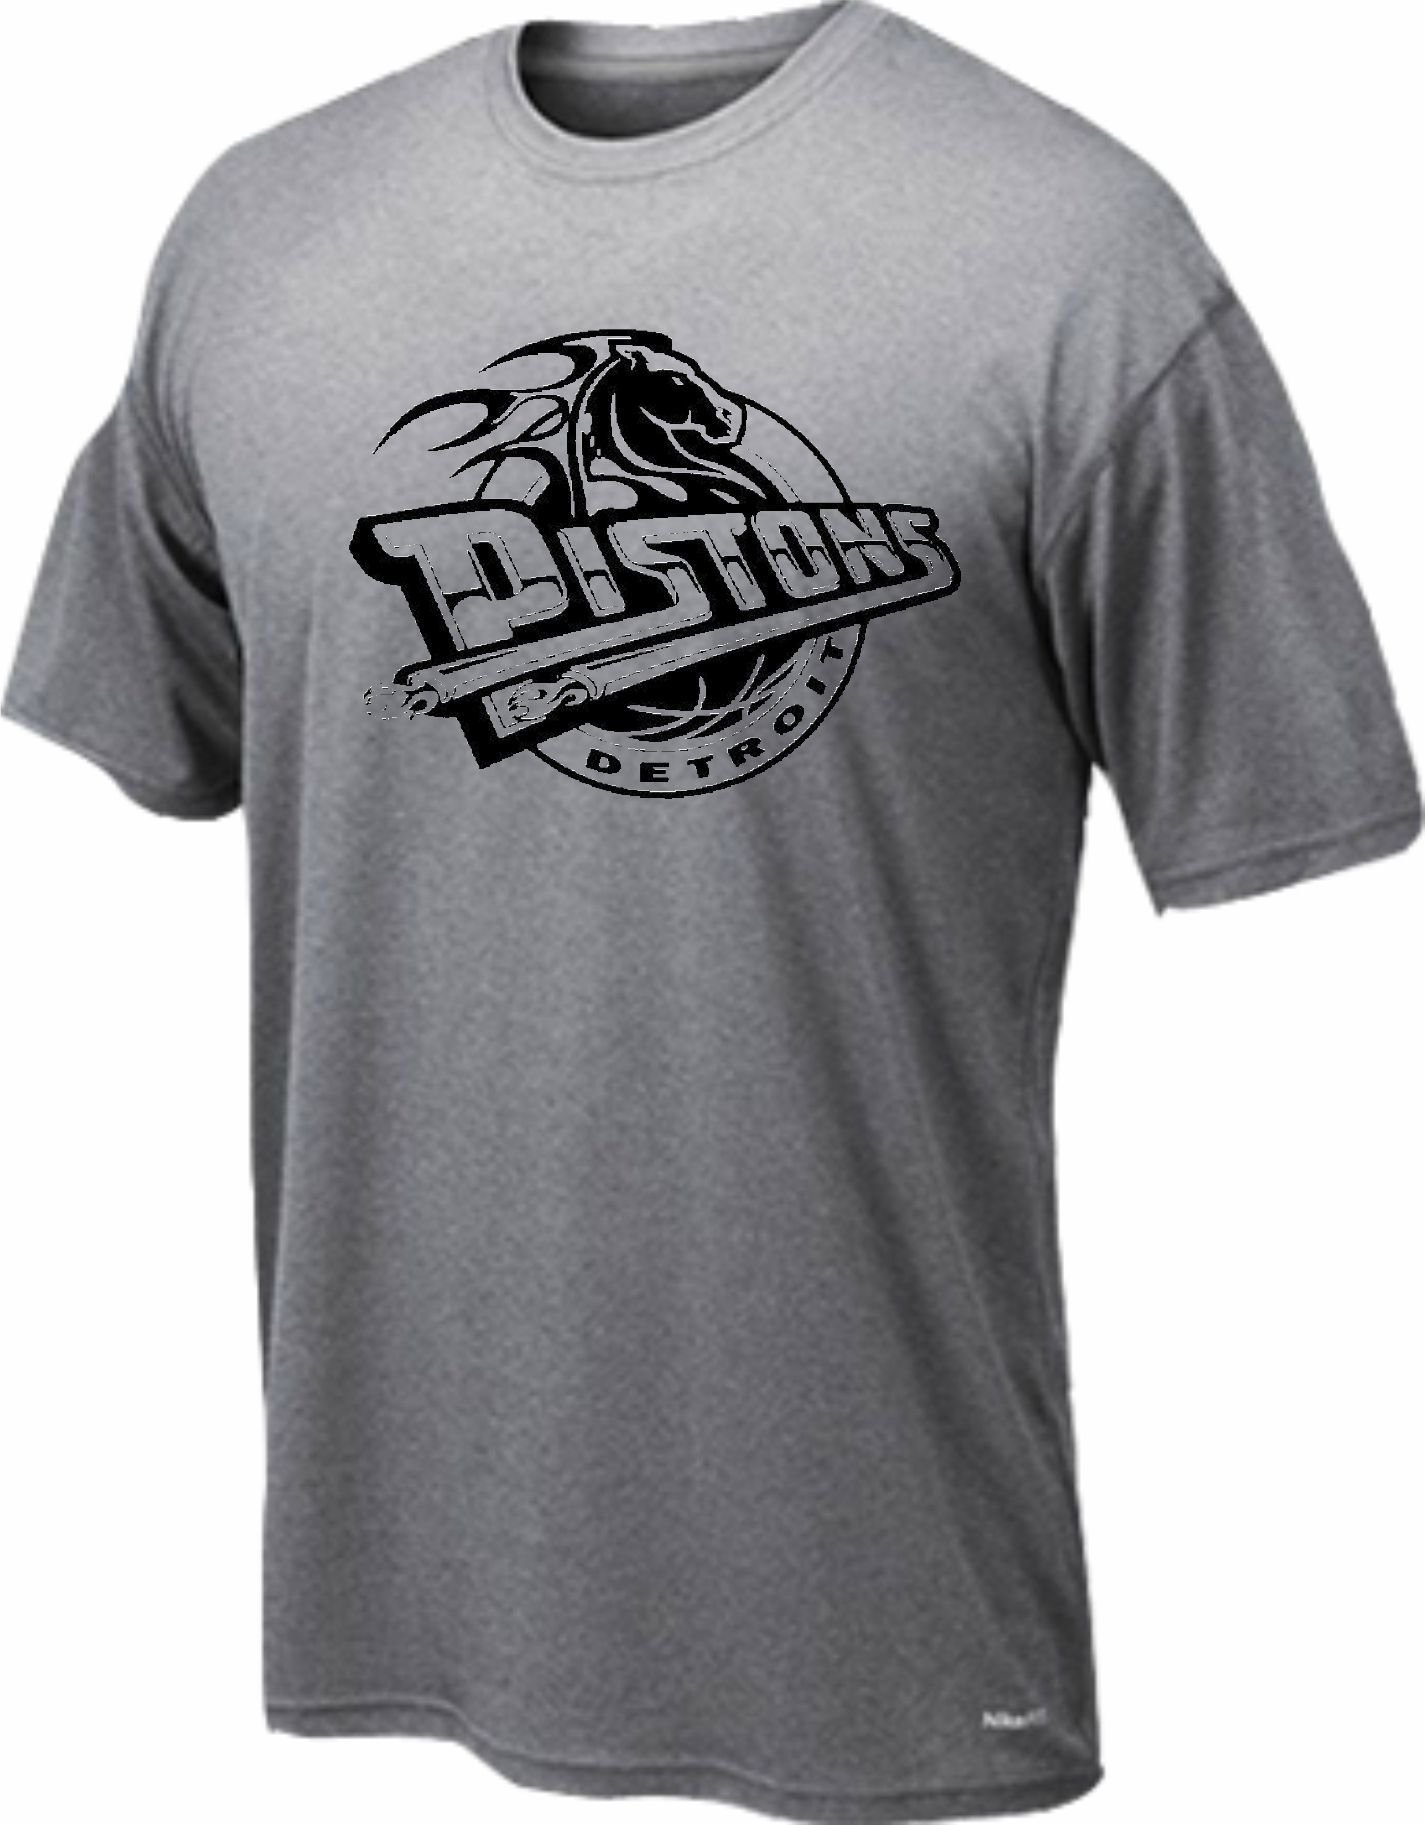 Dryfit t-shirt Detroit horse only black 247